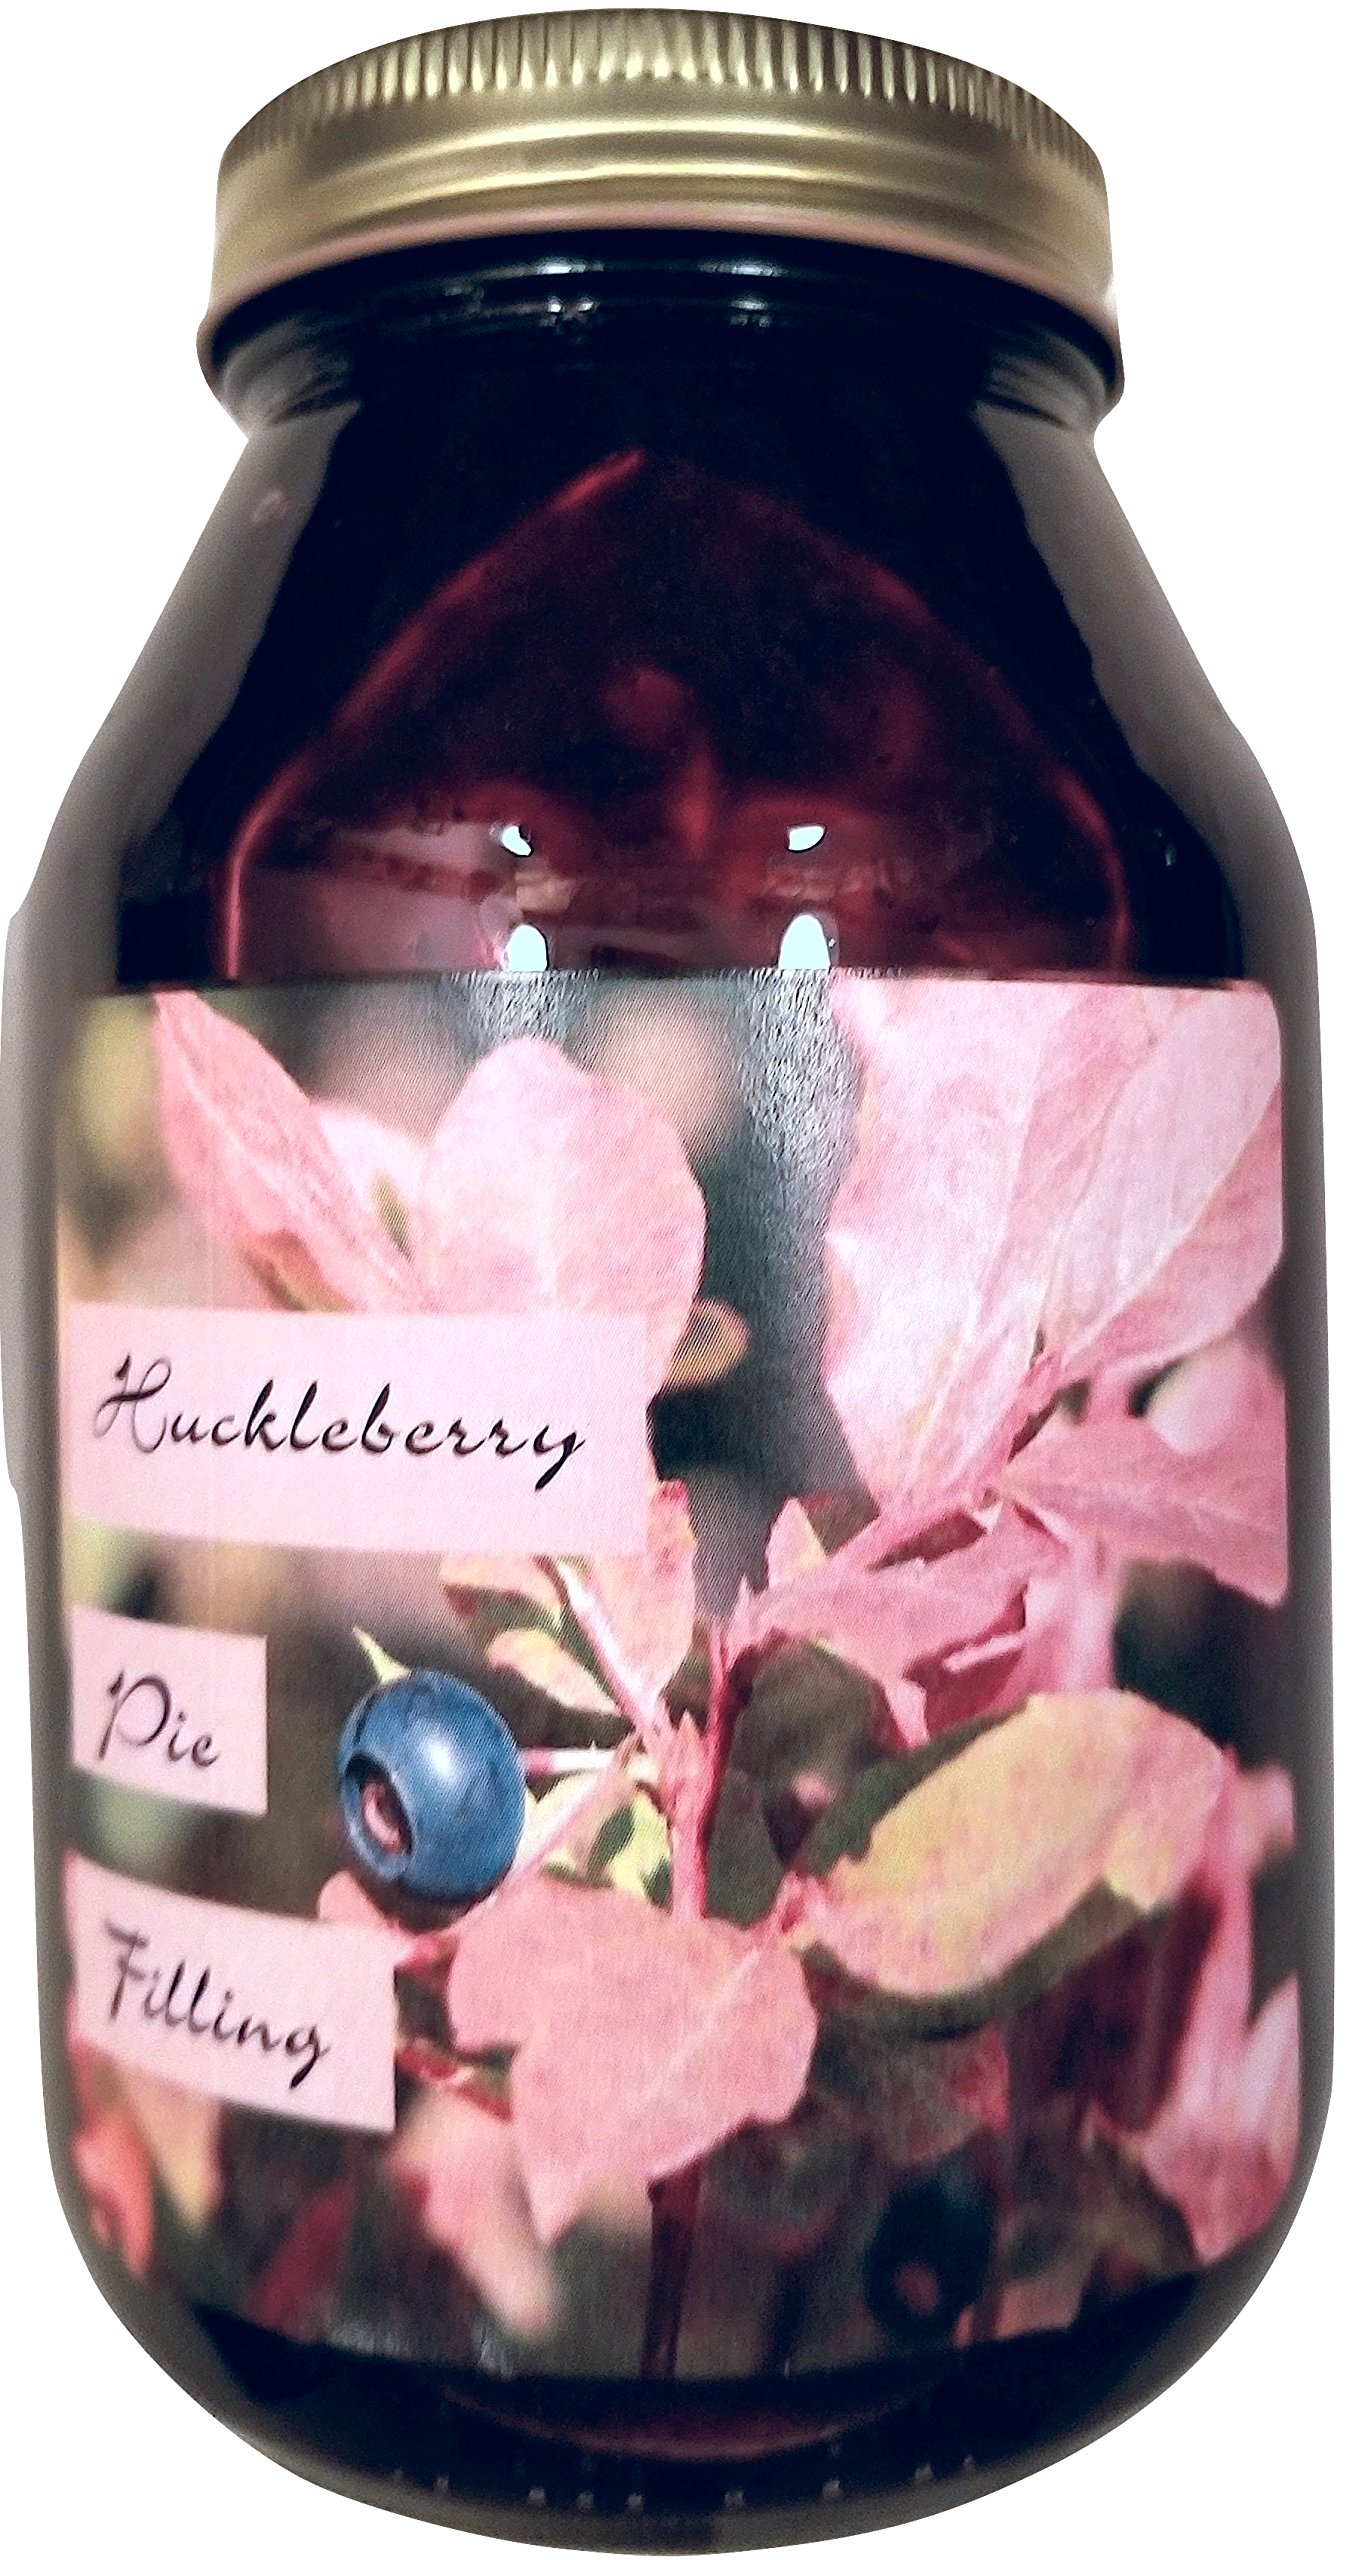 Huckleberry Pie Filling Montana Grown - 20 oz Real Fruit Grown & Hand Picked from Bounty Foods this is Vegan Friendly | Gluten-Free | Non-GMO for Pies - Cobblers - Toppings or Desserts (Huck 20oz) by Bounty Foods